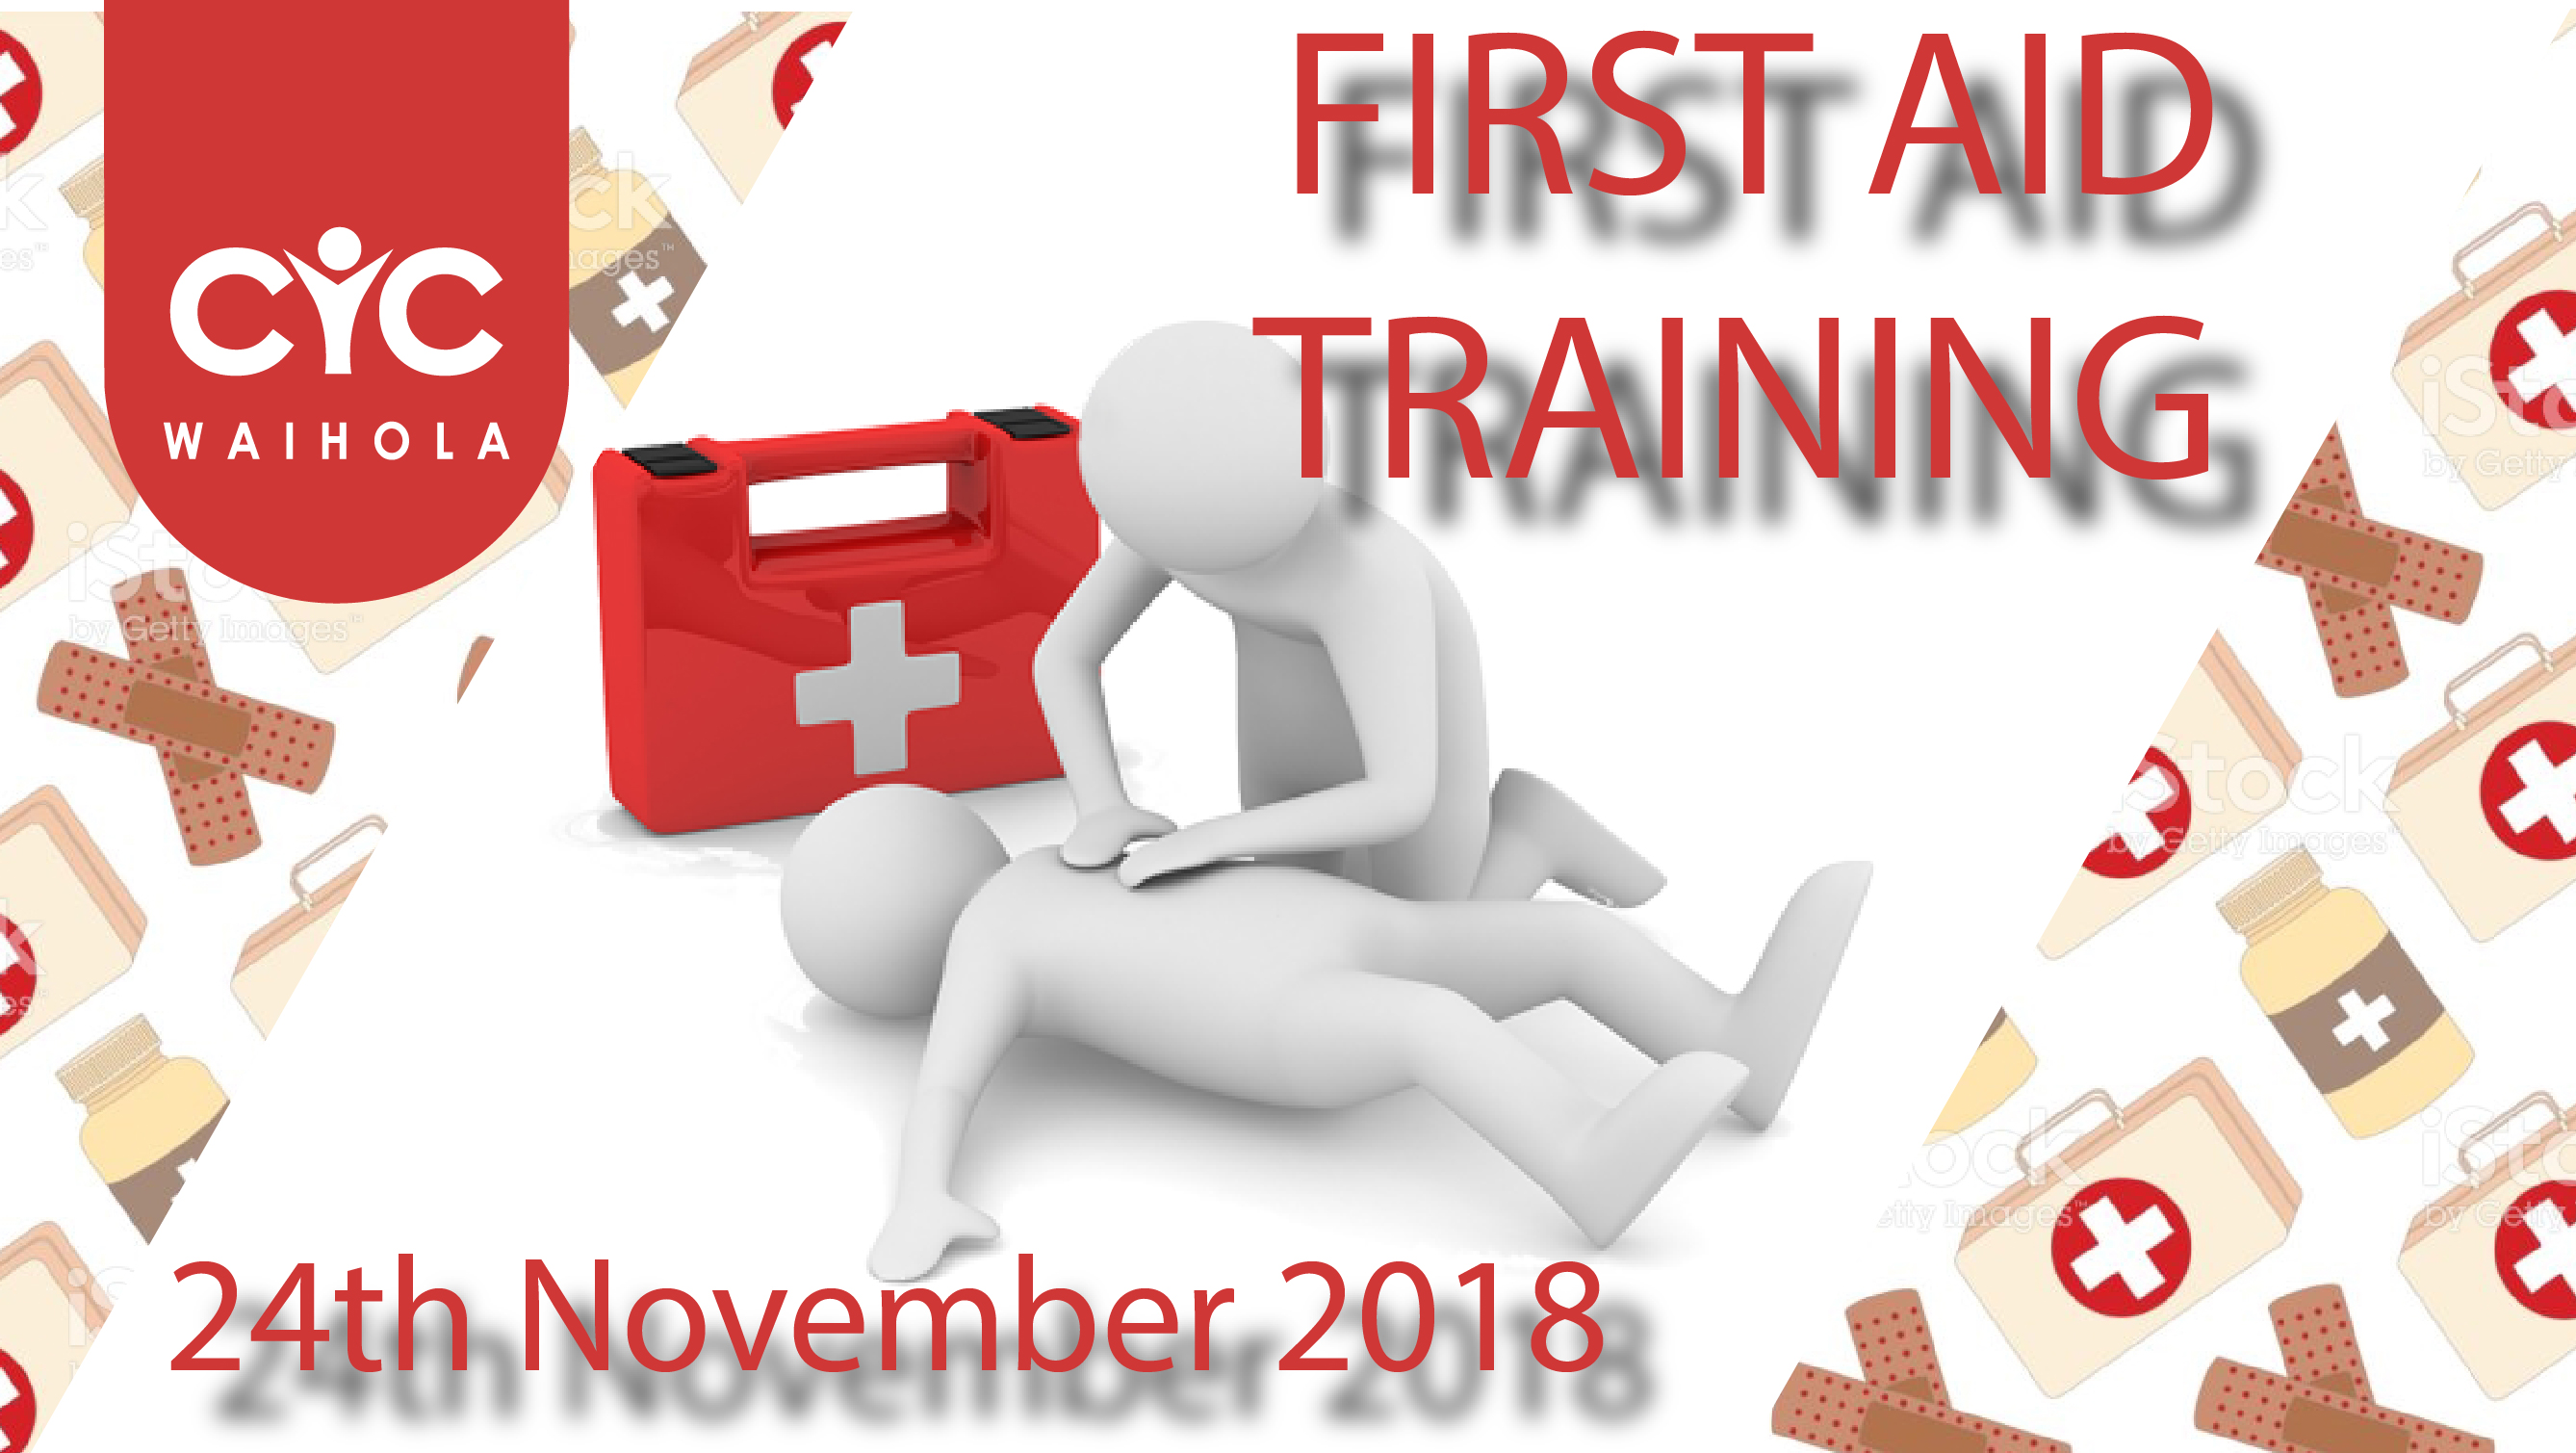 2018 First Aid Training + Refresher Courses